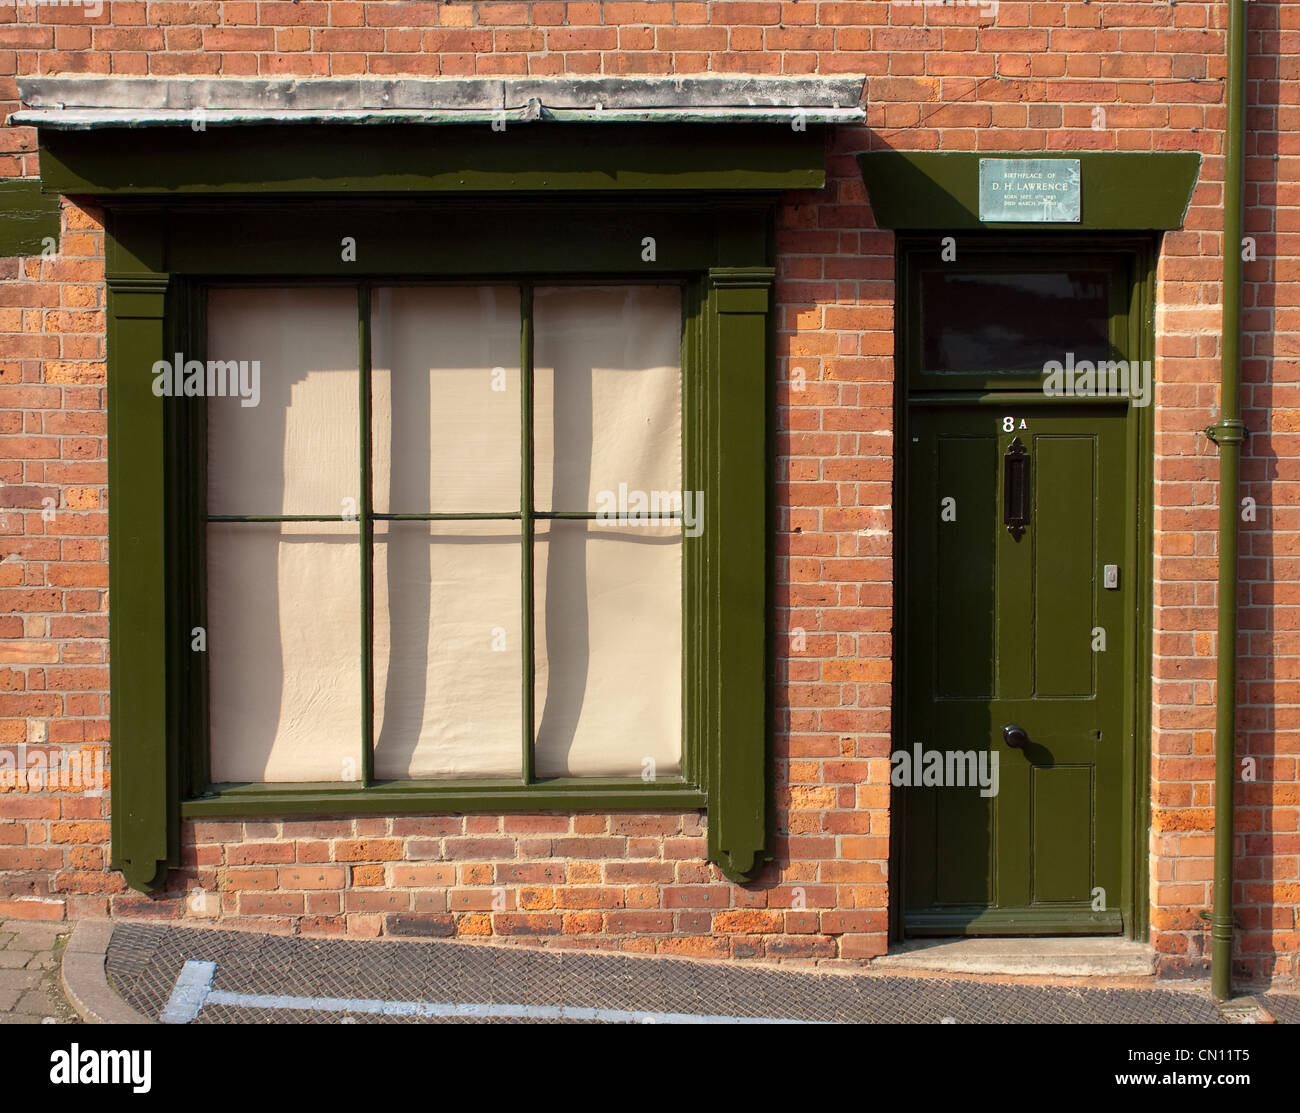 The D H Lawrence birthplace museum in Eastwood, Nottinghamshire - Stock Image